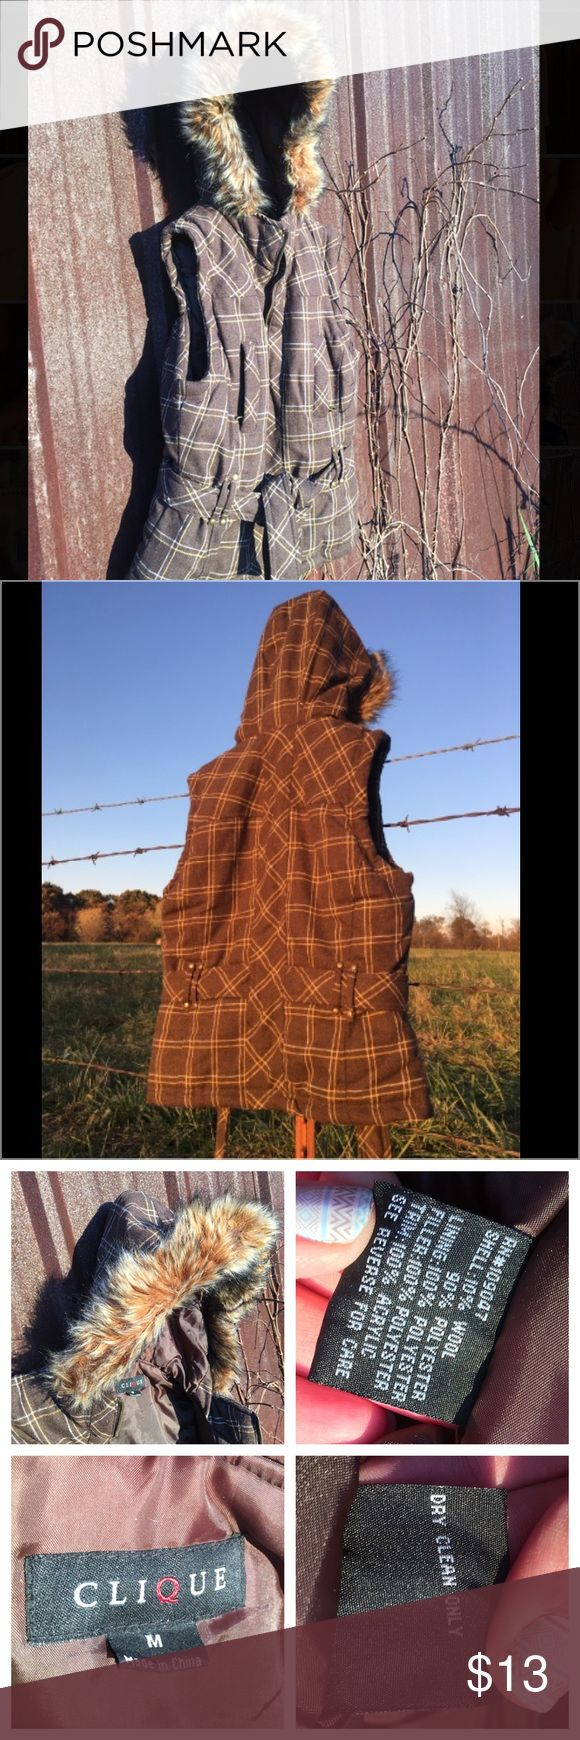 Clique Padded Plaid Fur Hooded Vest with Tie Clique Women's Padded Plaid Belted Vest With Faux Fur Trim Hood. Medium, zip up front. Two high zip horizontal pockets. Brown with yellow and white plaid. Excellent condition, worn once. Sizing runs small. Clinique Jackets & Coats Vests